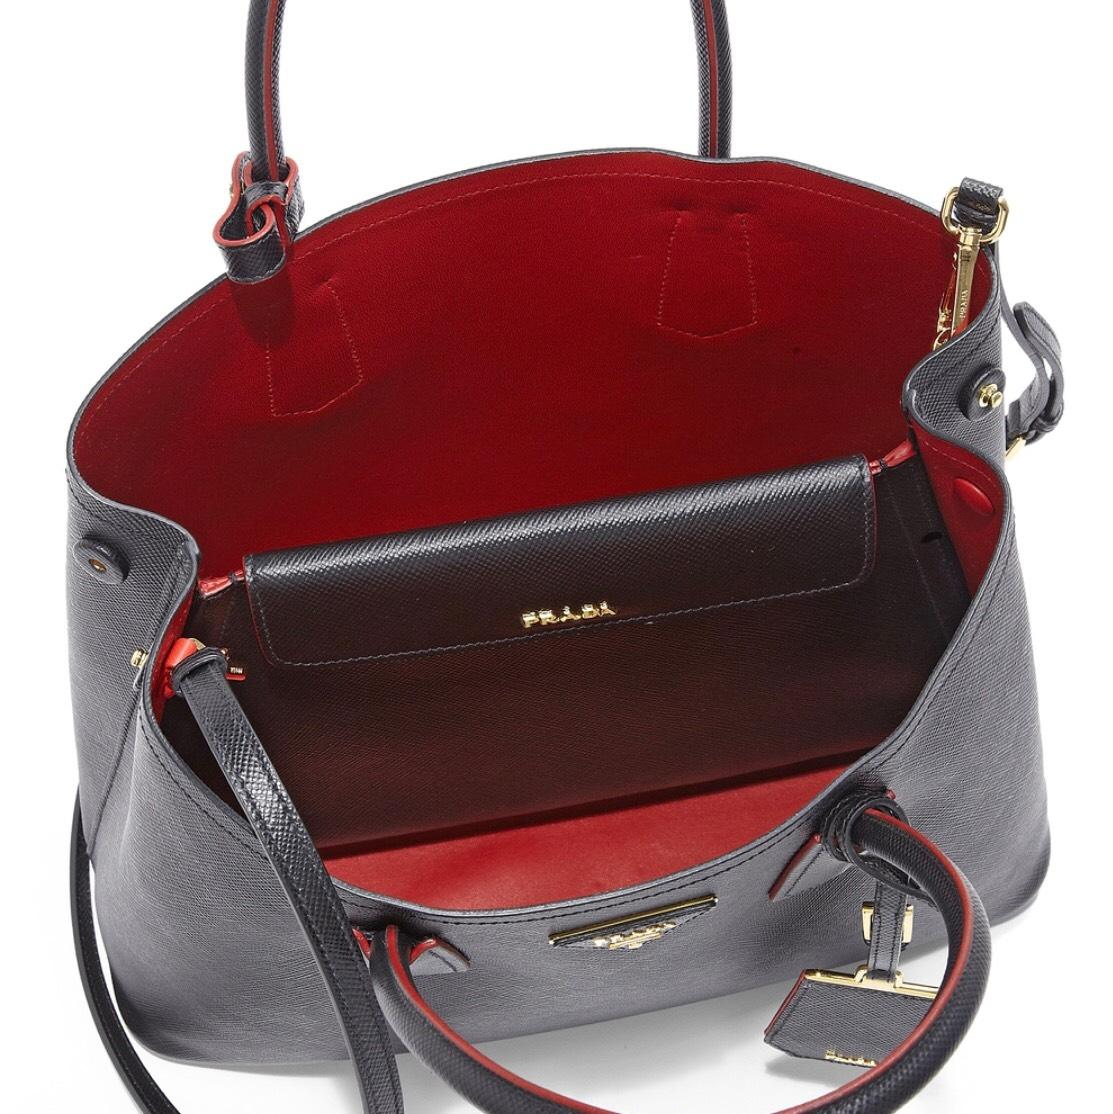 d8bc3d038883 ... bag ca30a efe31; where to buy prada double cuir medium tote black red  saffiano leather satchel ff5bf 9e072